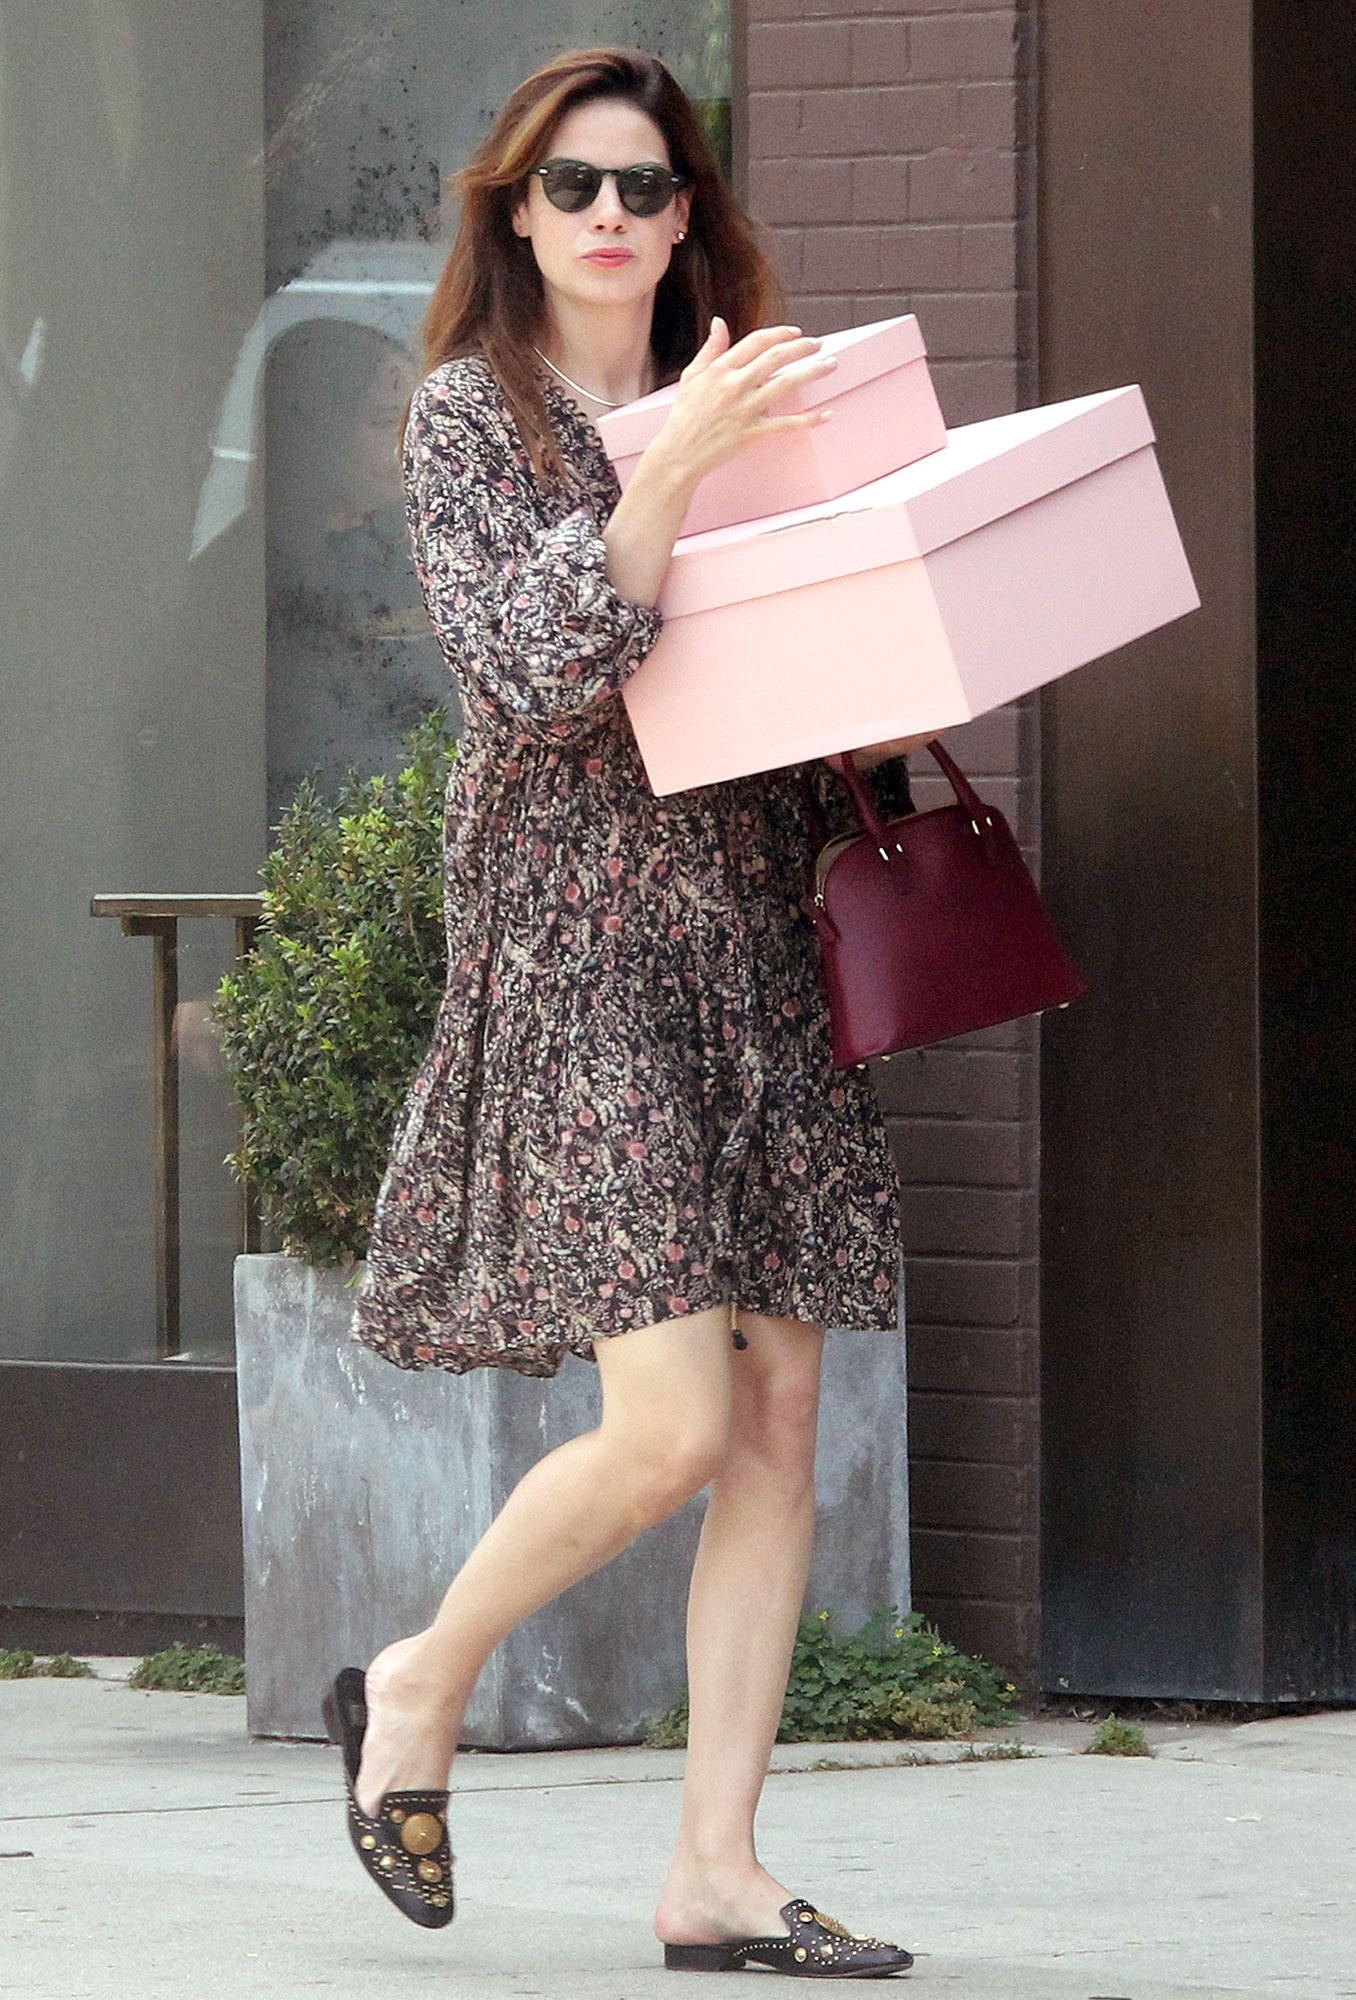 """EXCLUSIVE: Michelle Monaghan carrying pink boxes, spotted going to """"The Line"""" store in West Hollywood."""